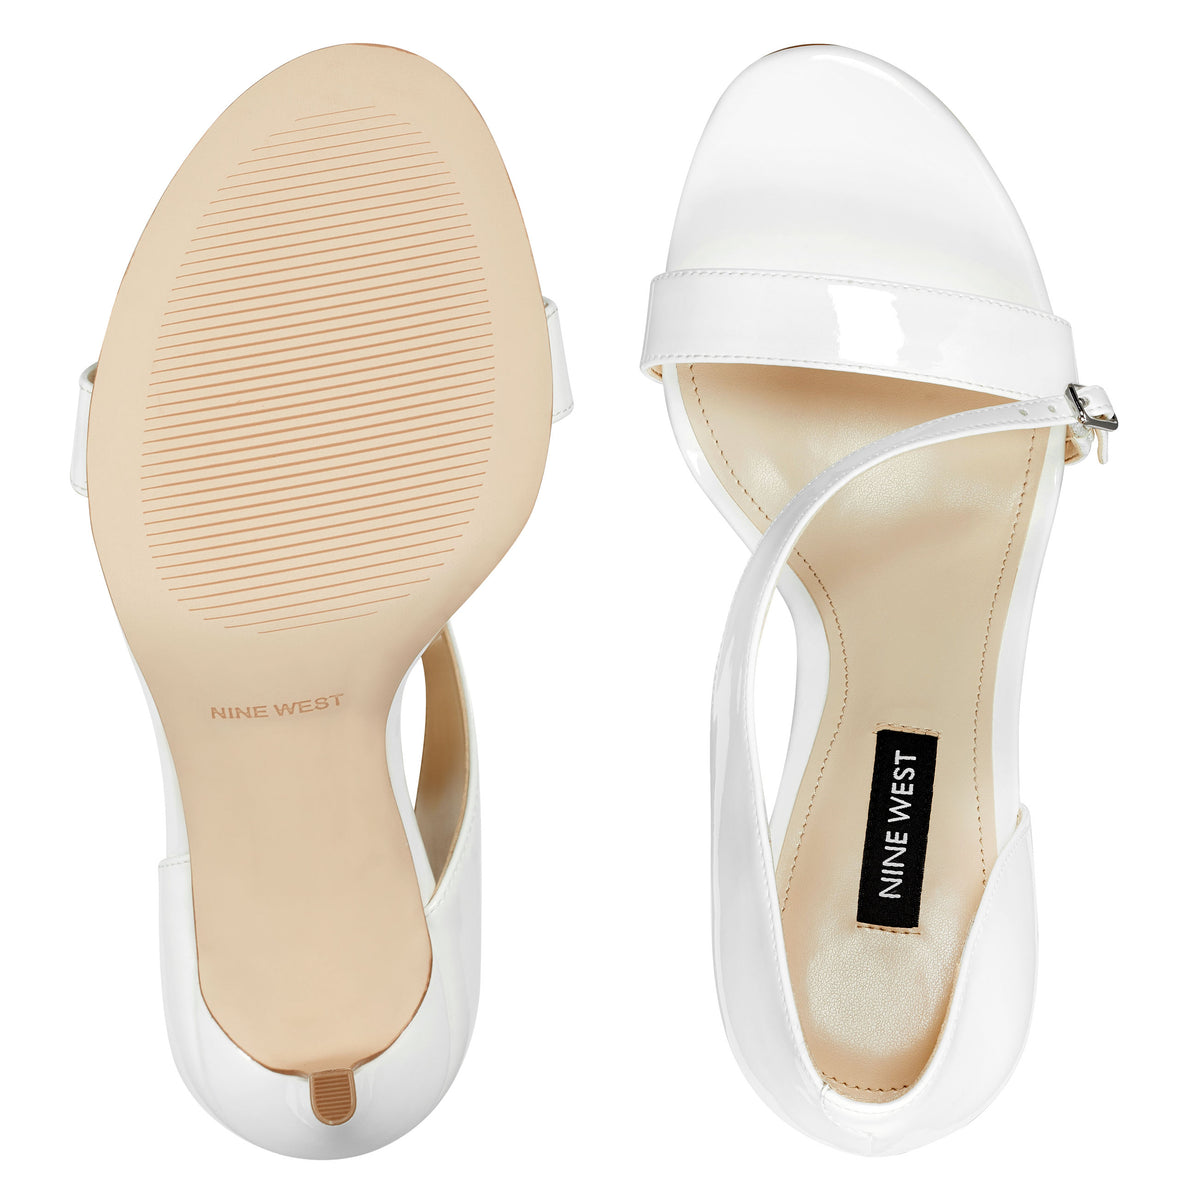 imprint-open-toe-pump-in-white-patent